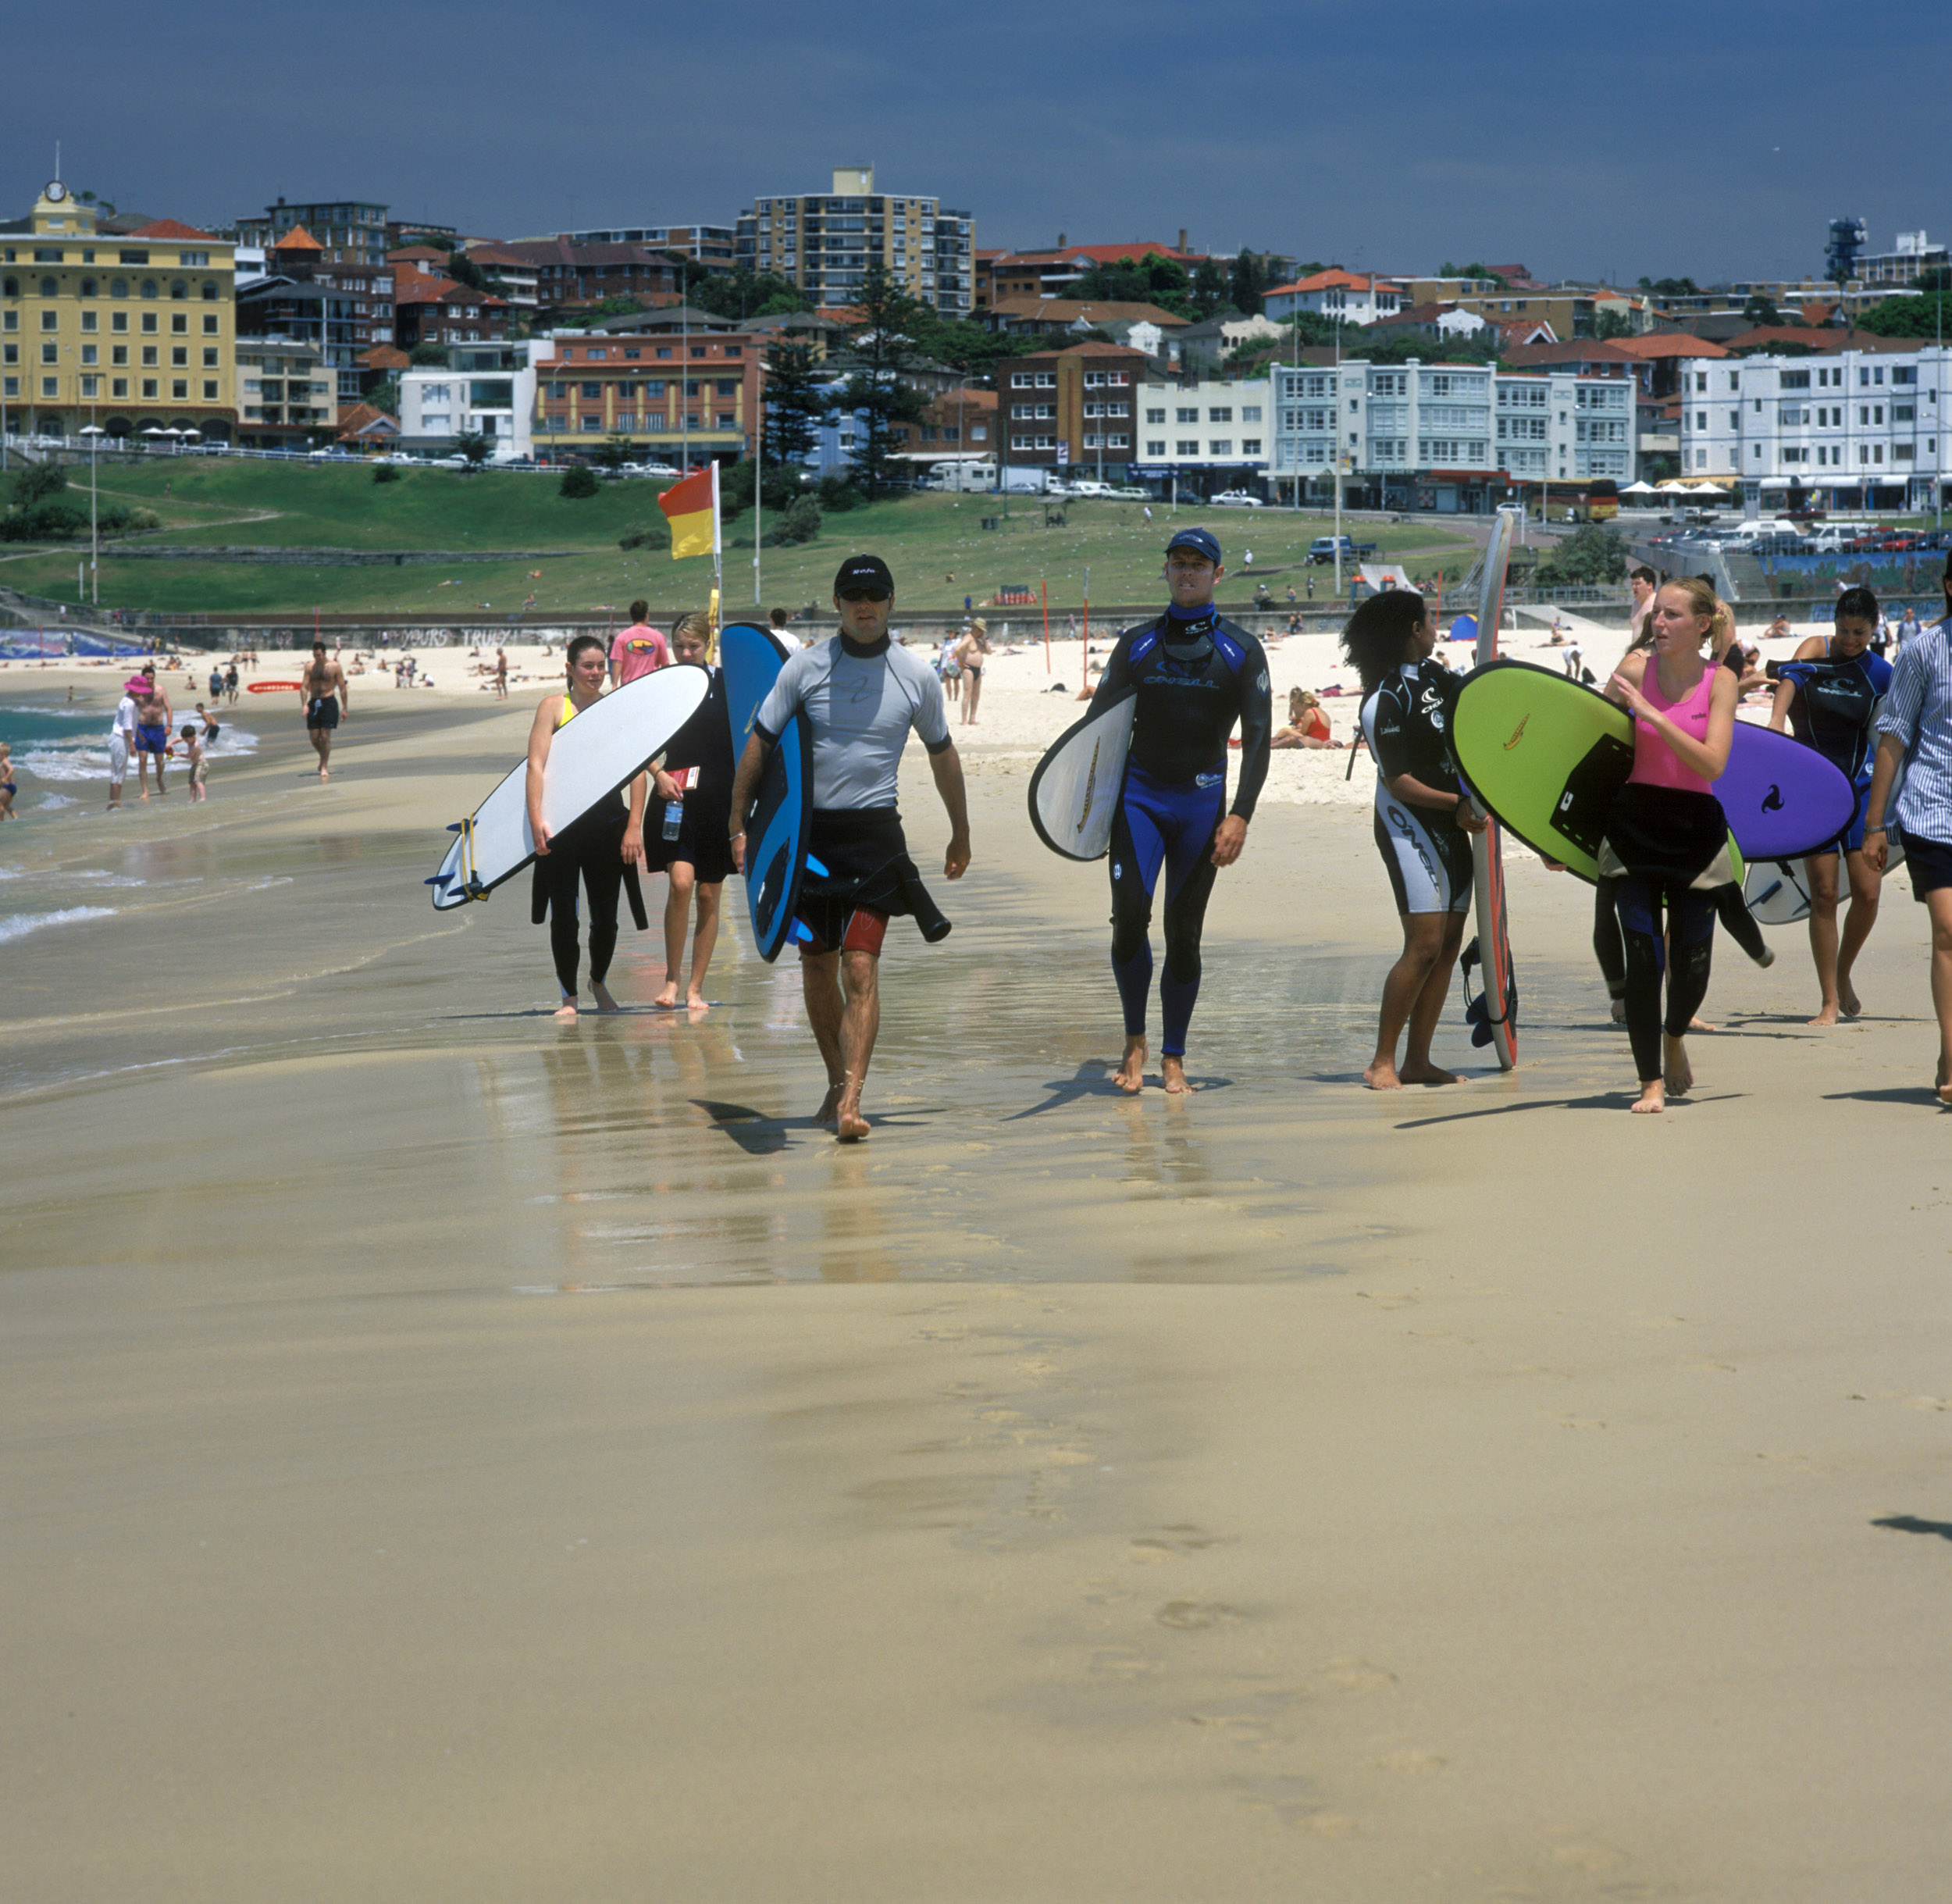 Australie Sydney Bondi Beach strand surfen surfers watersport toerisme huizen South Pacific Ocean